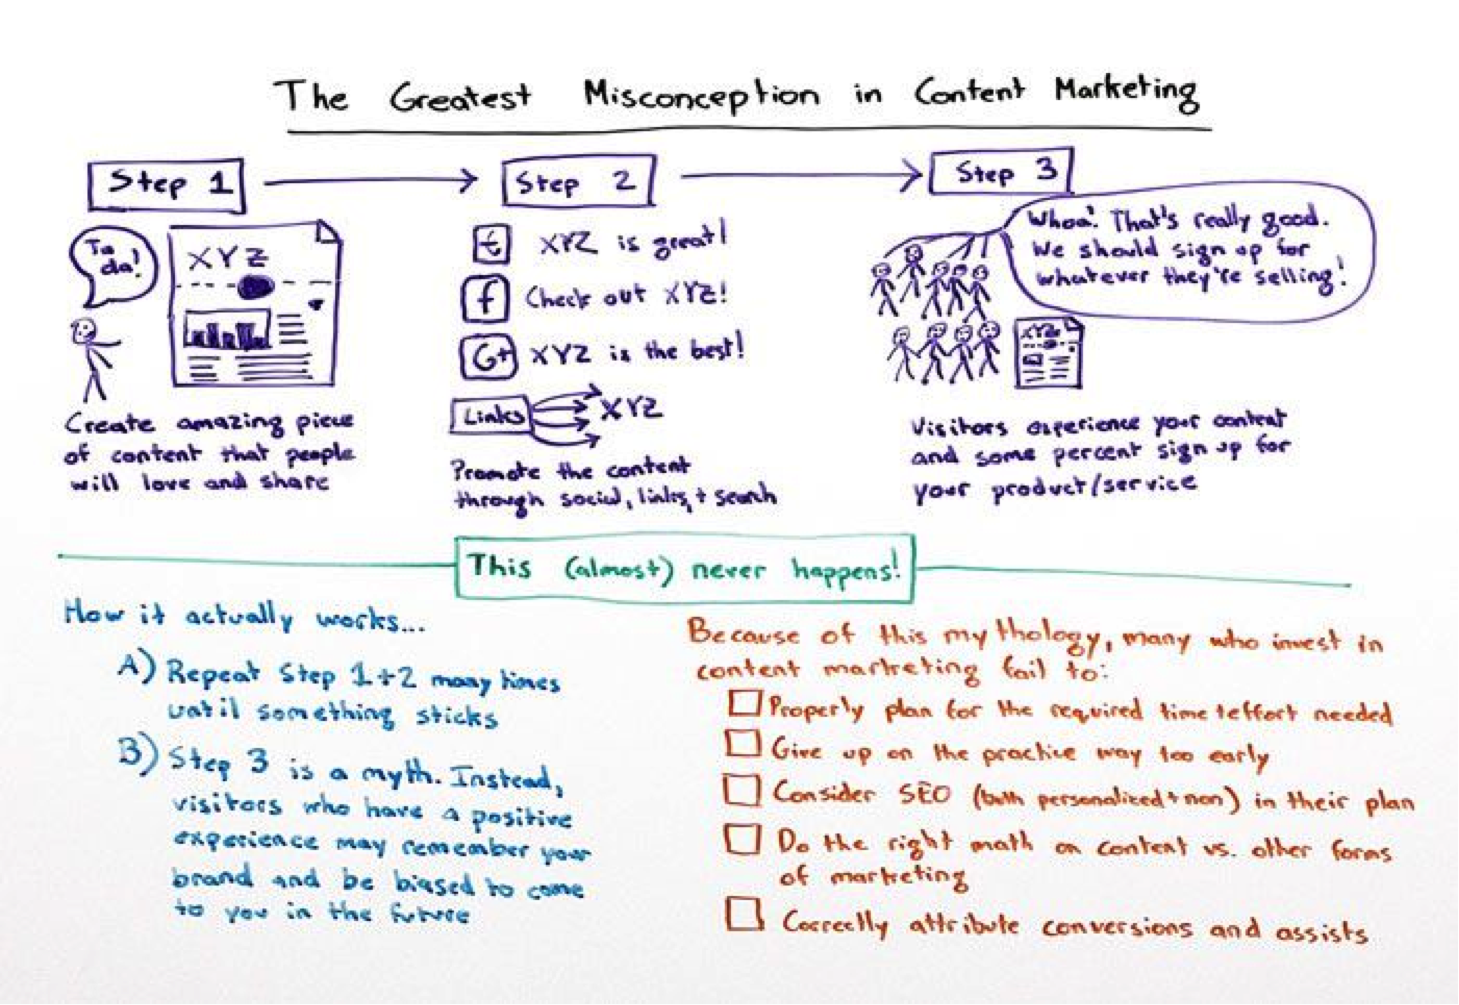 Content marketing's greatest misconception